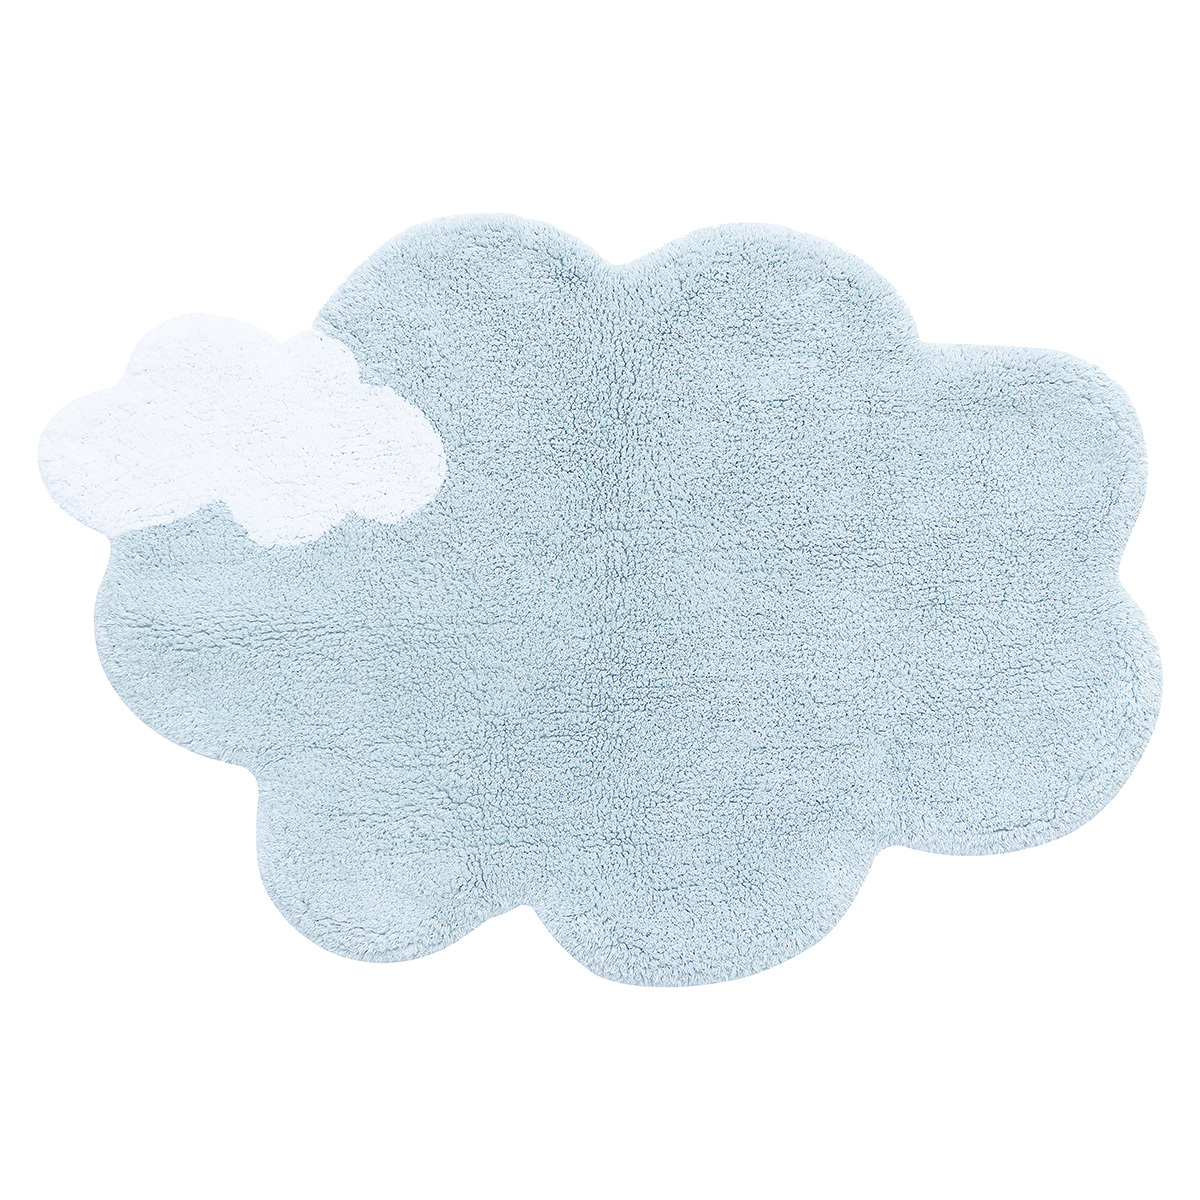 Tapis Tapis Lavable Mini Dream - 70 x 100 cm Tapis Lavable Mini Dream - 70 x 100 cm